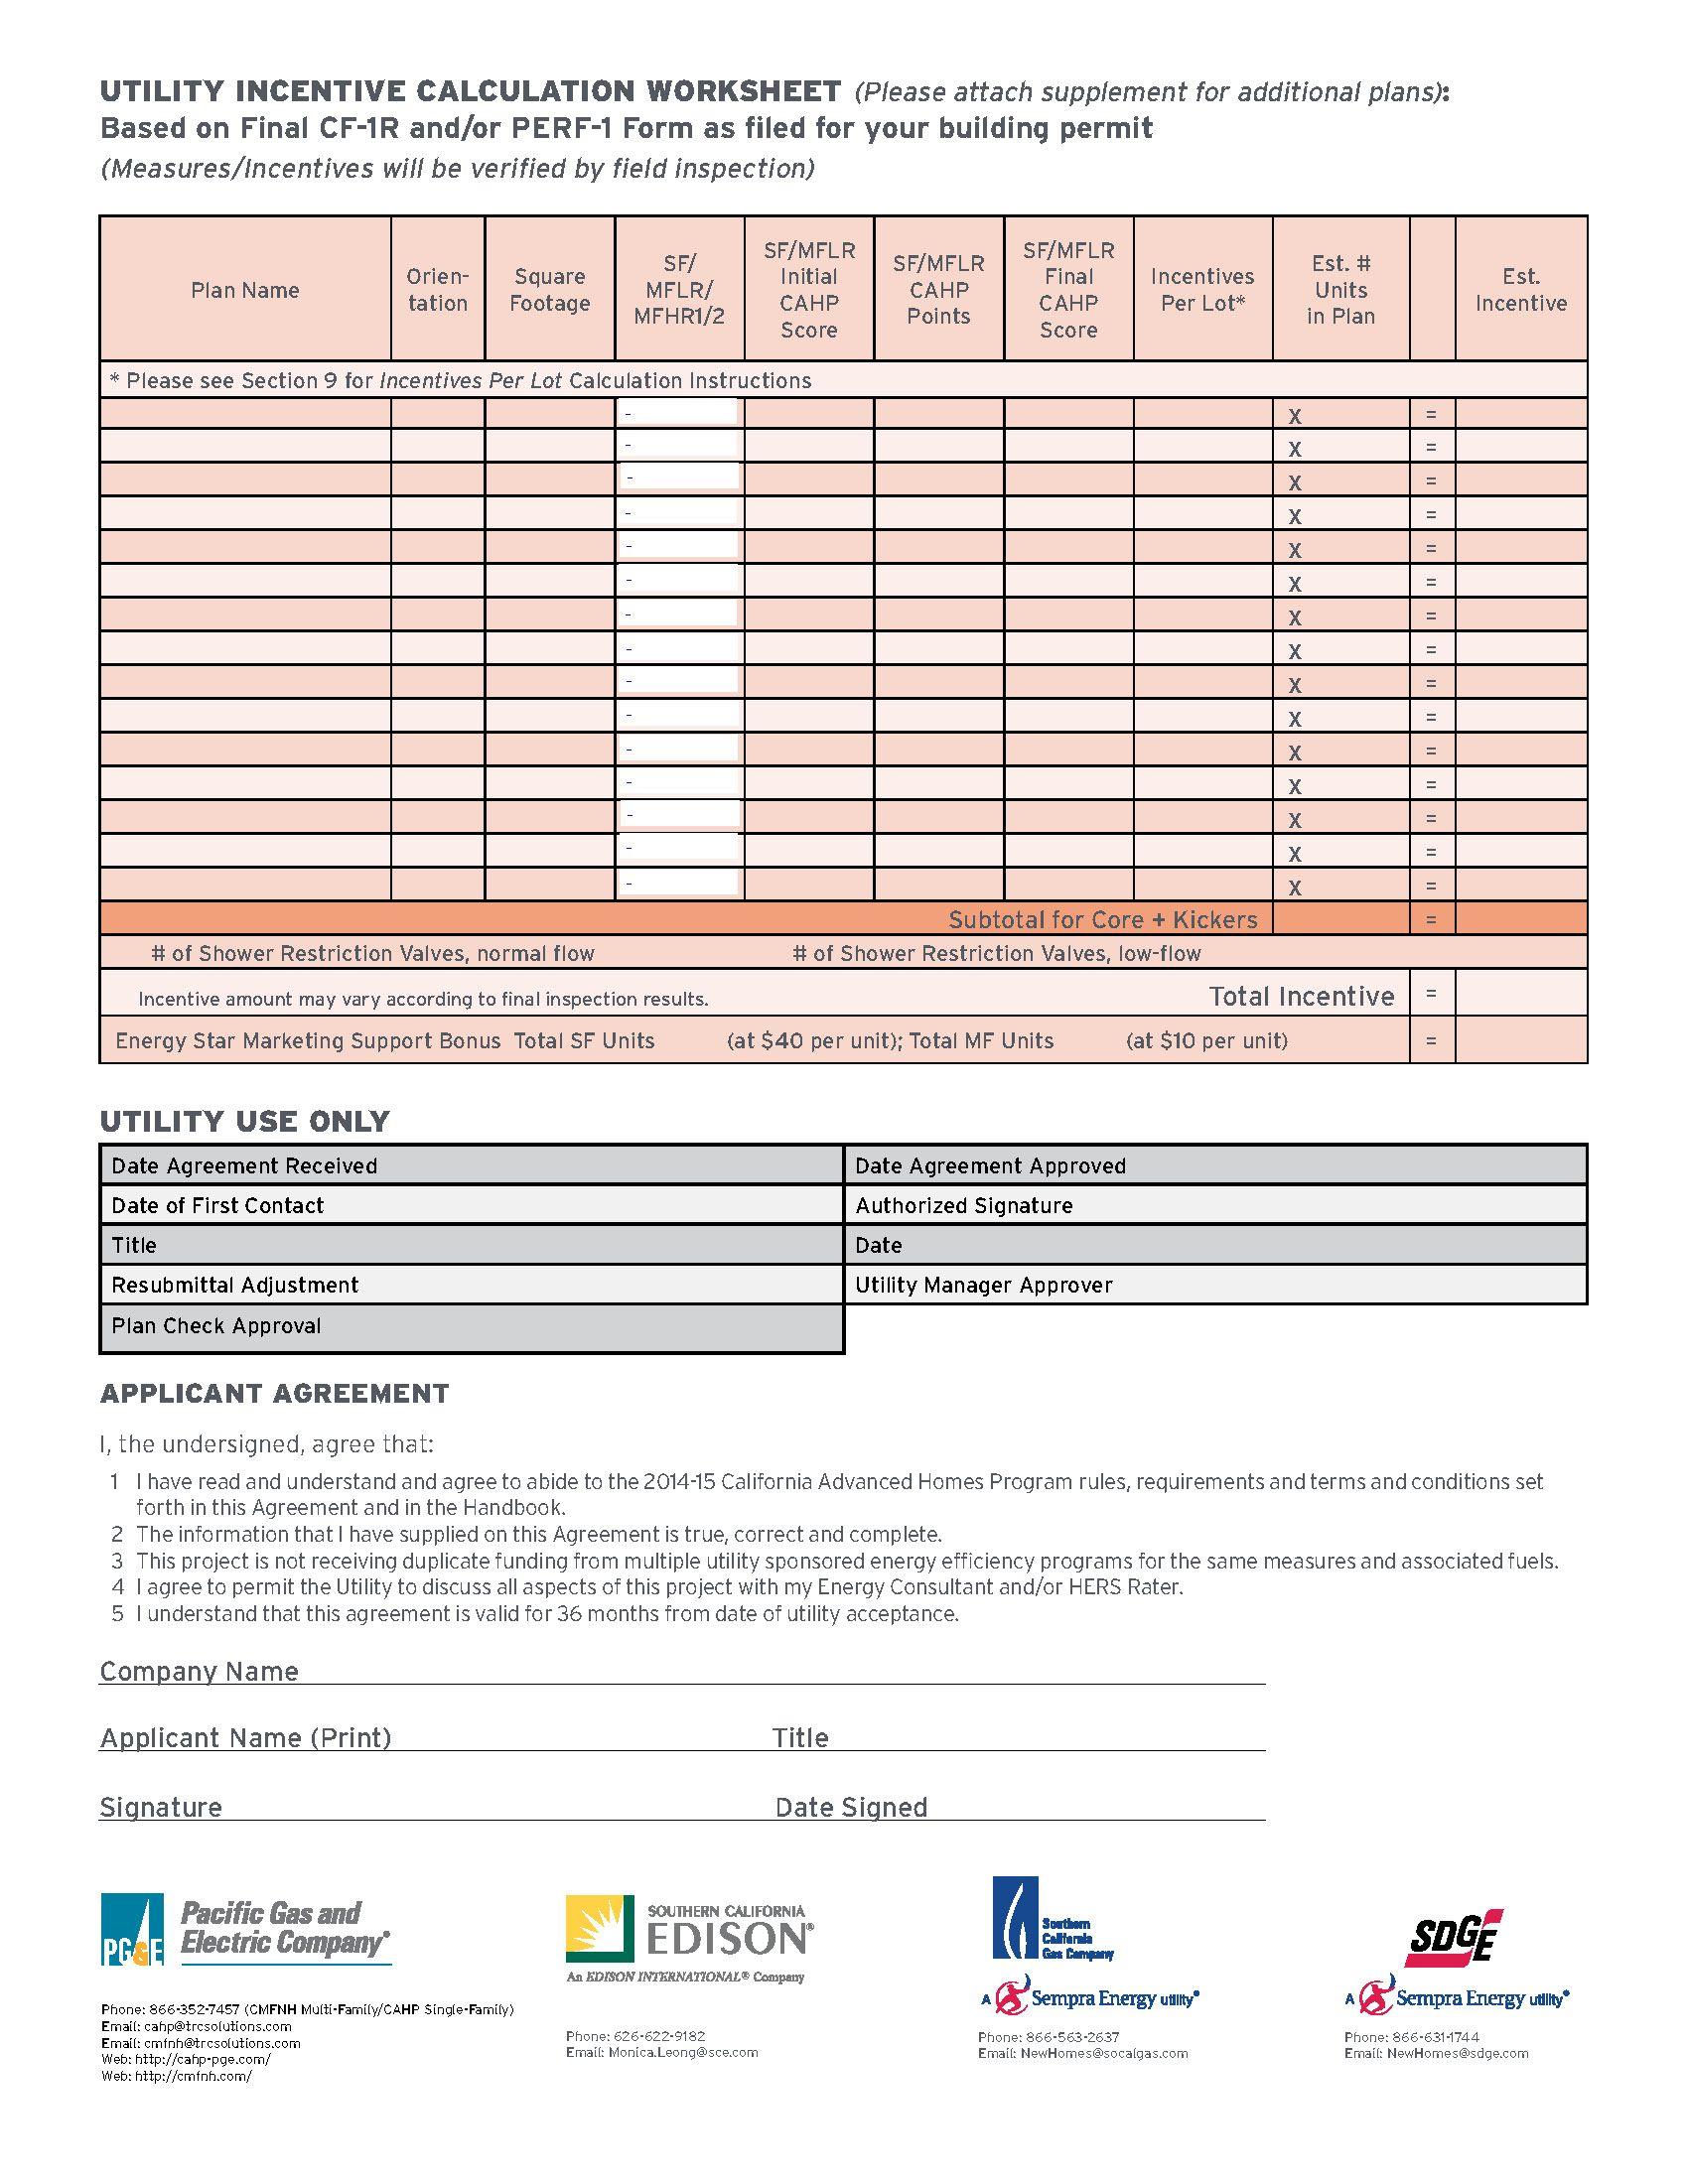 Utility Incentive Calculation Worksheet From The 2014 15 California Advanced Homes Program Single Family Multi Family Inc Incentive Understanding How To Plan